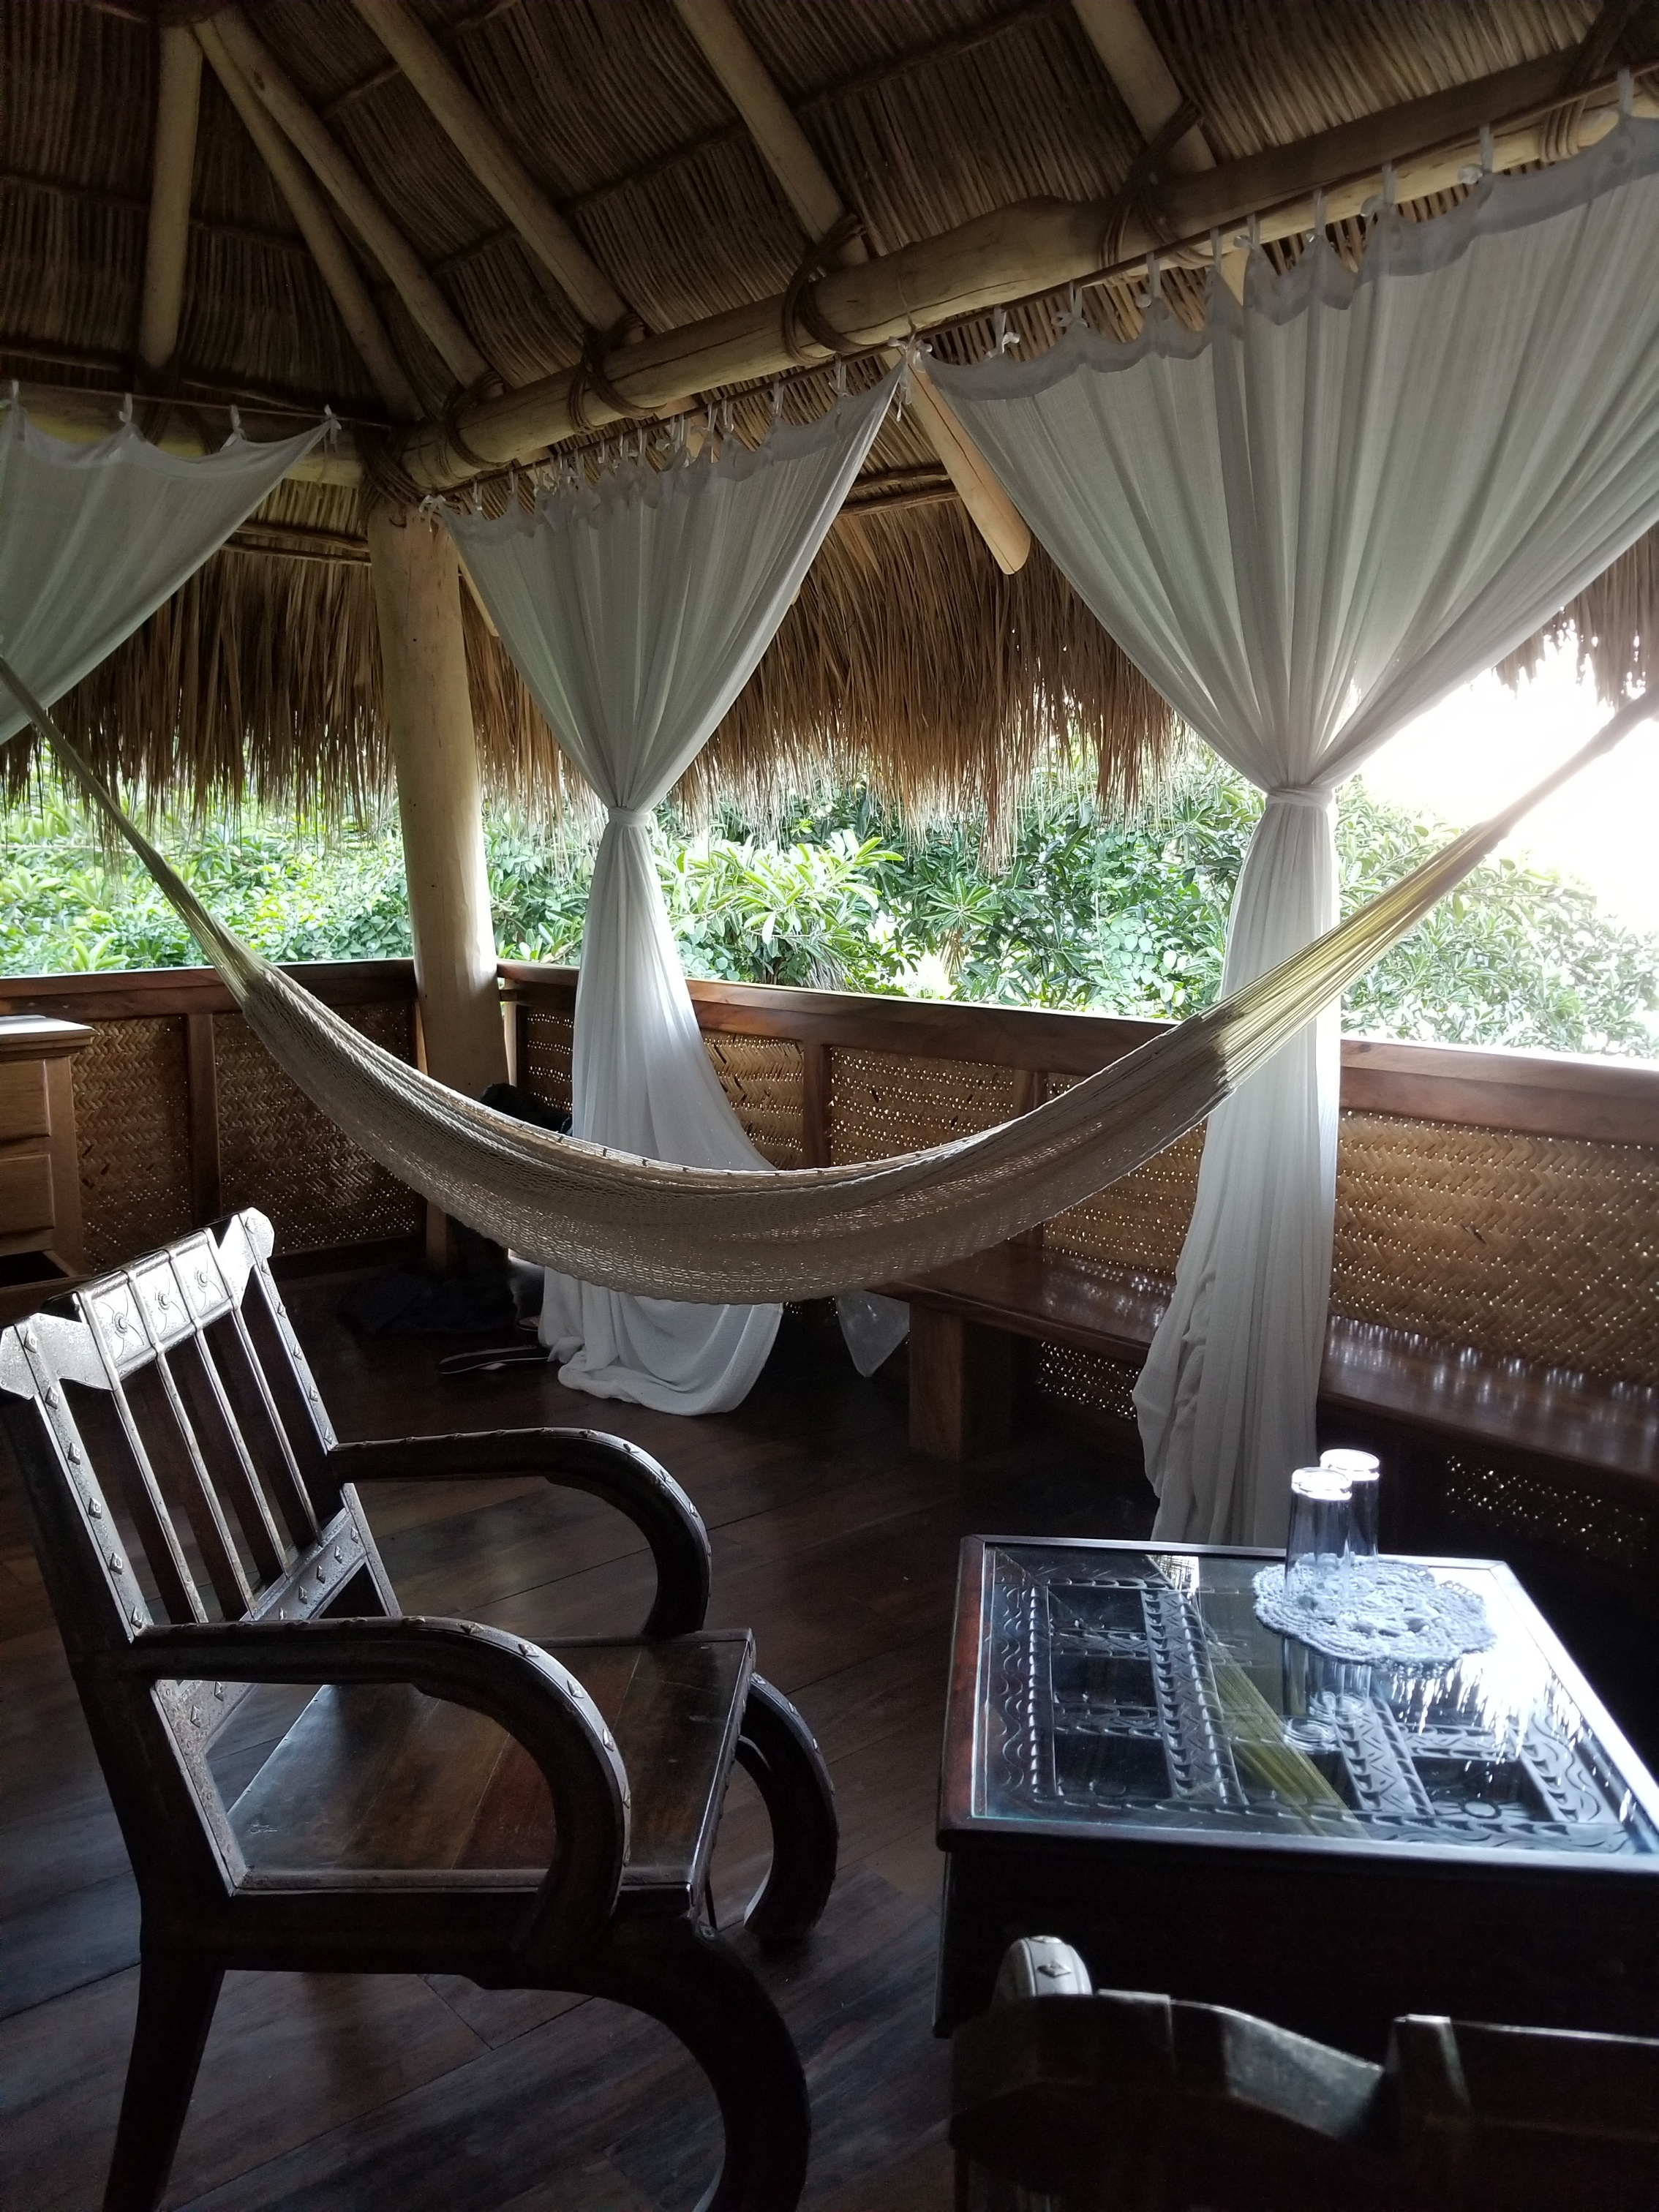 Living among the tropical elements in Moldavite cabana.